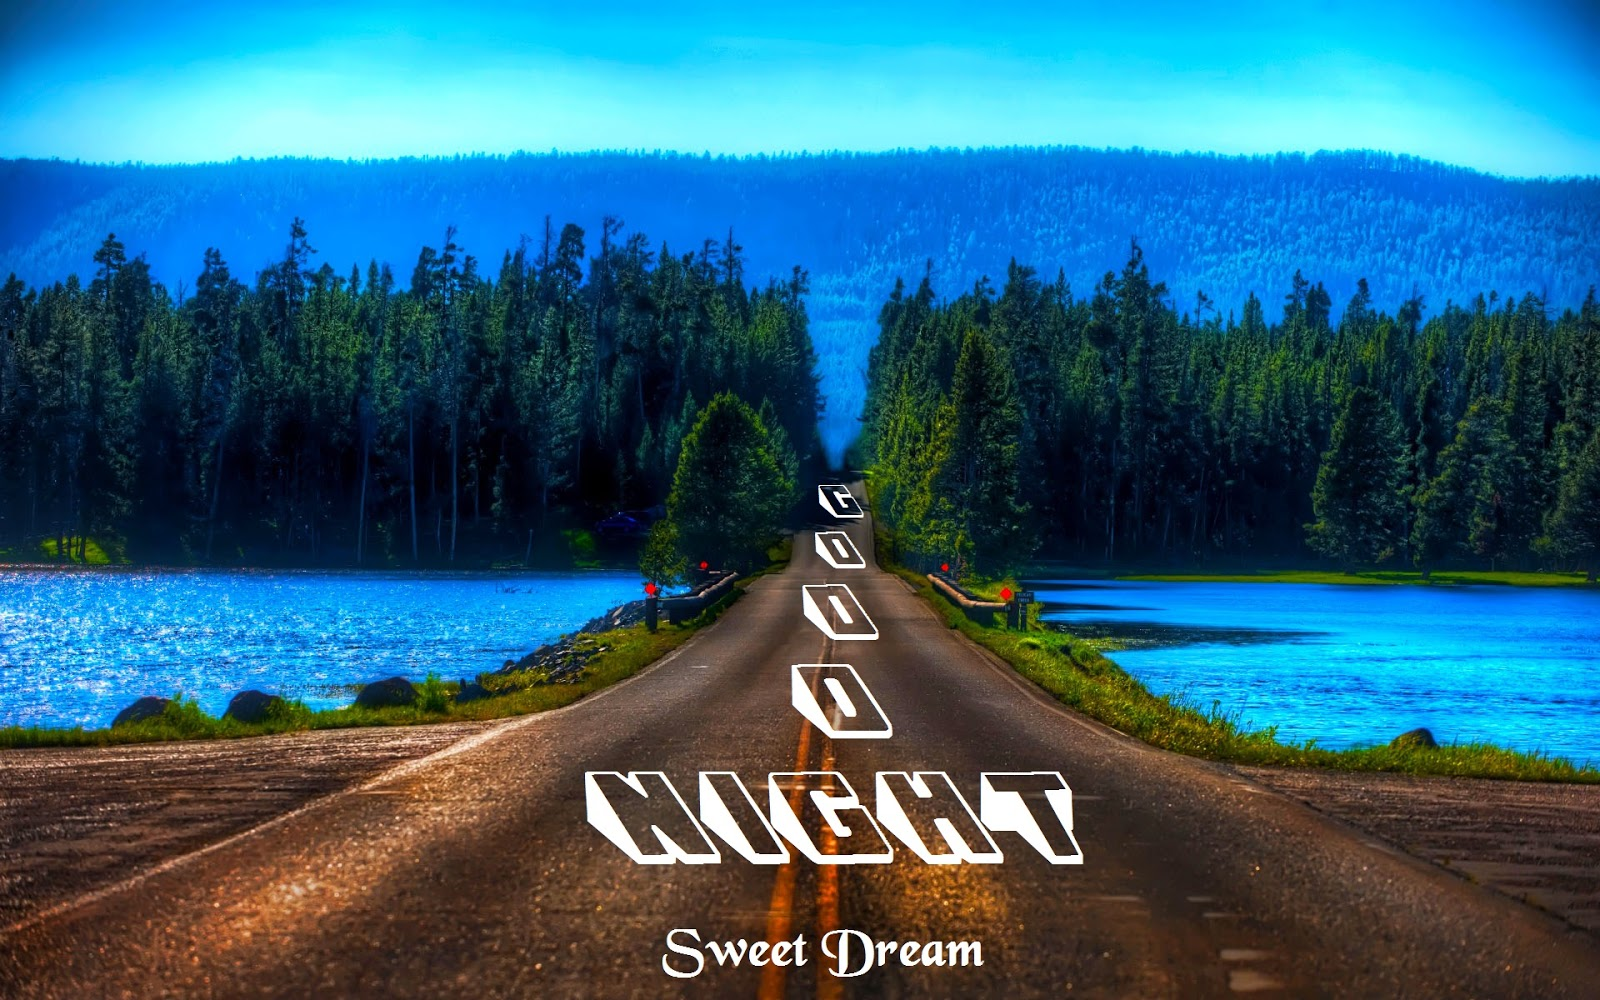 Festival chaska amazing good night nature hd wishes cards - Good night nature pic ...